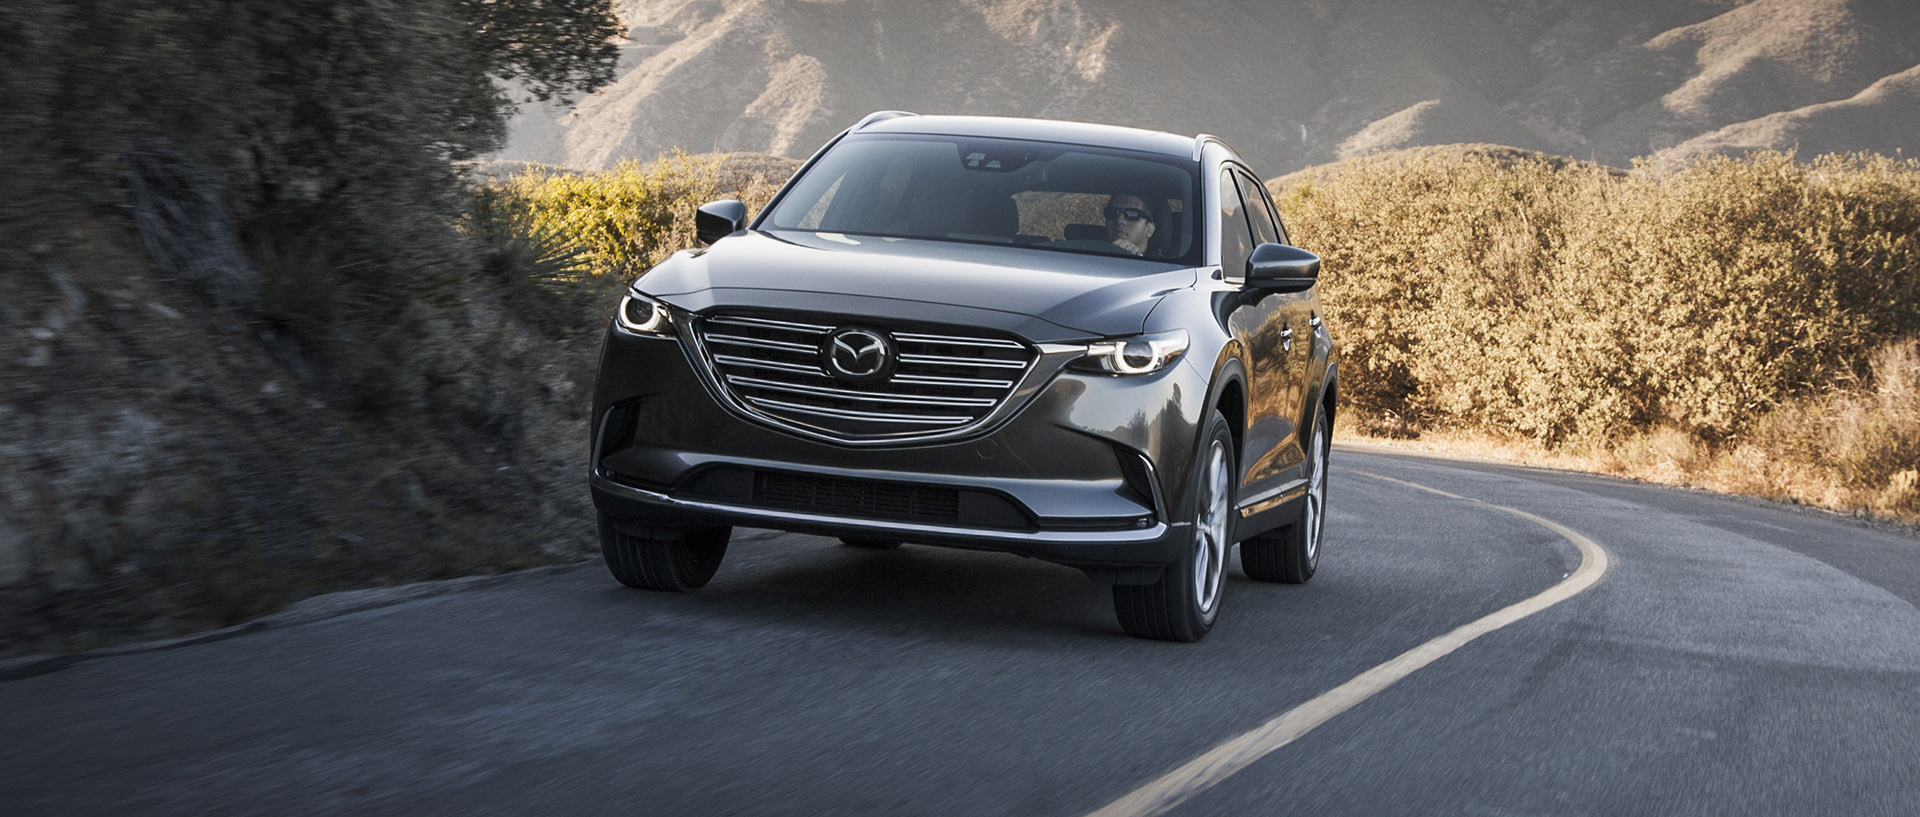 Driving The Turbocharged 2017 Mazda Cx 9 Consumer Reports Ford 2 V6 Engine Diagram